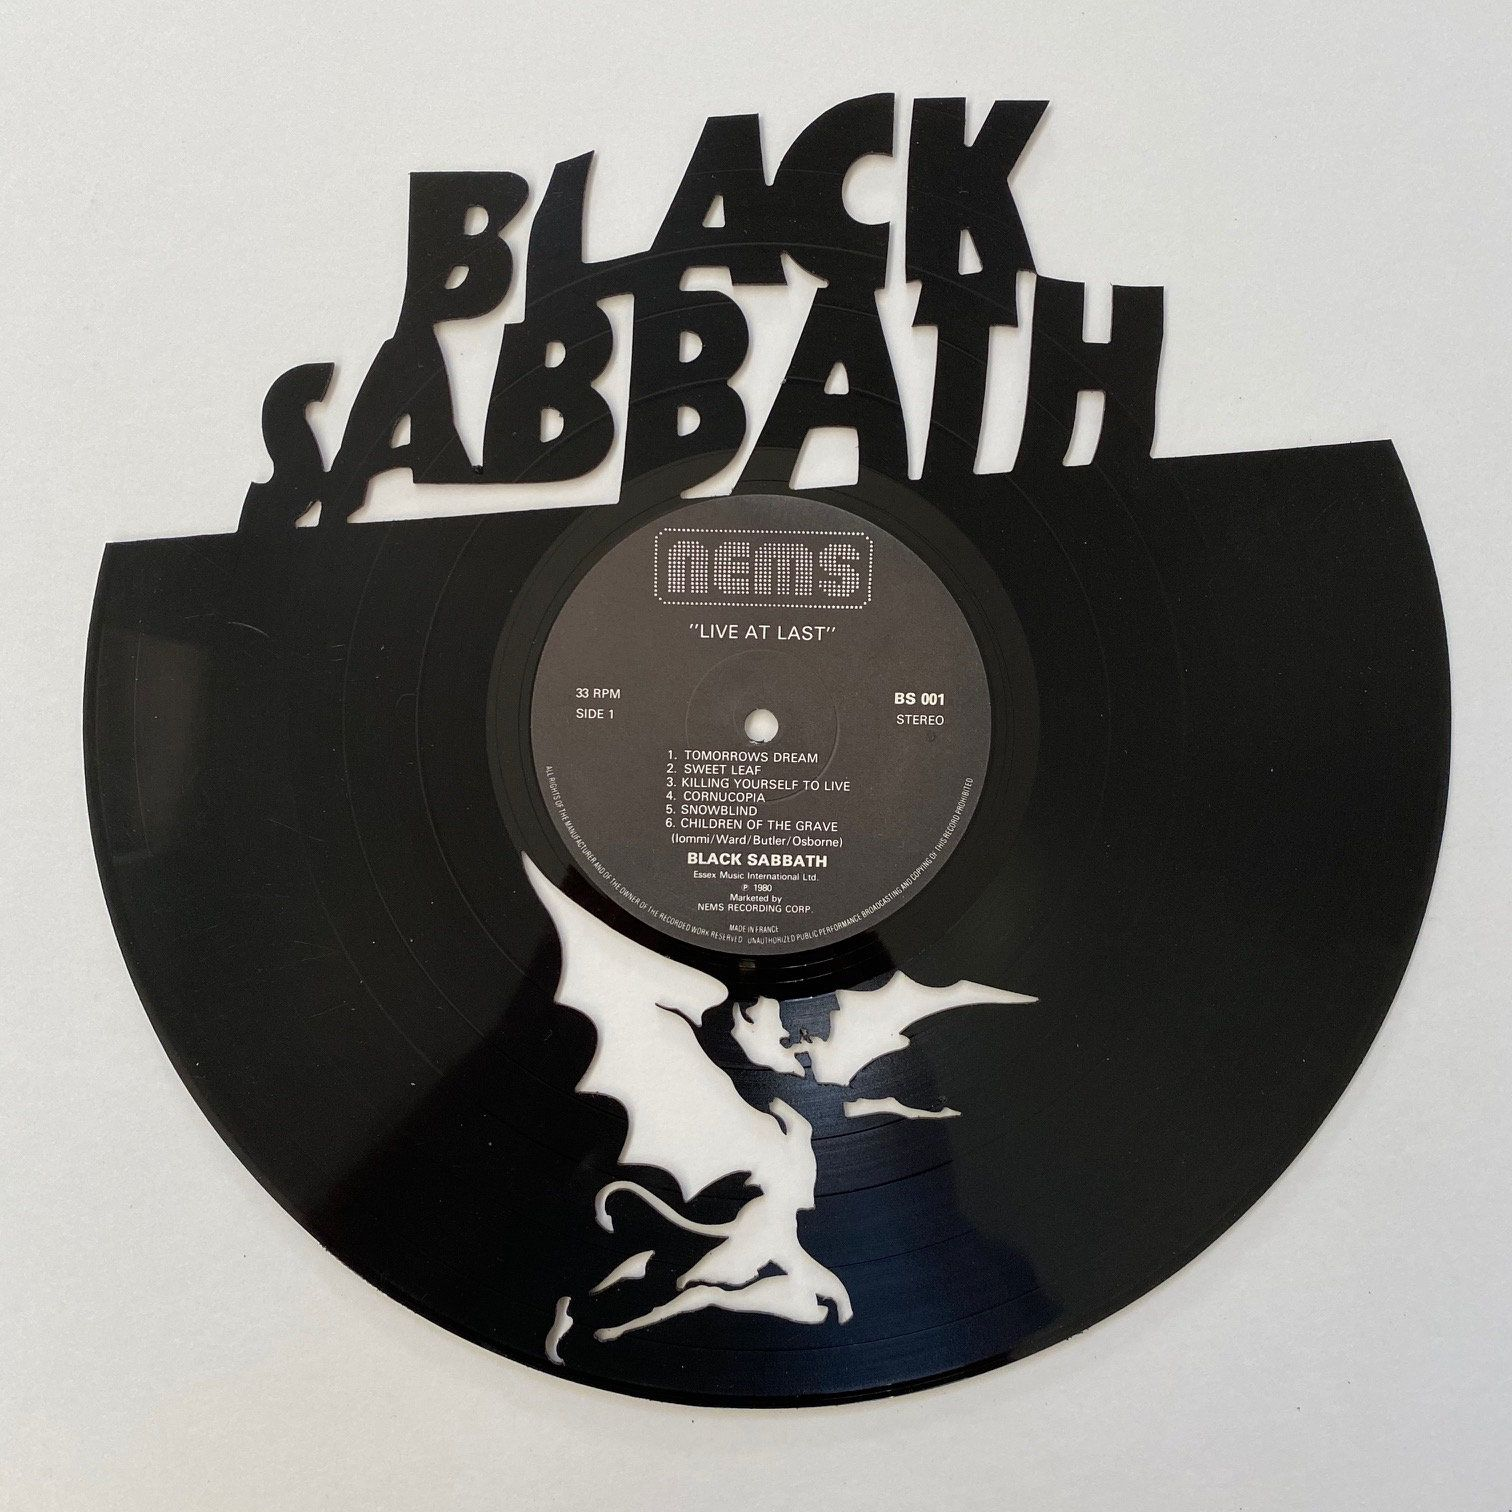 Excited To Share The Latest Addition To My Etsy Shop Black Sabbath Vinyl Record Art Https Etsy Me 37eut In 2020 Vinyl Record Art Black Sabbath Albums Black Sabbath